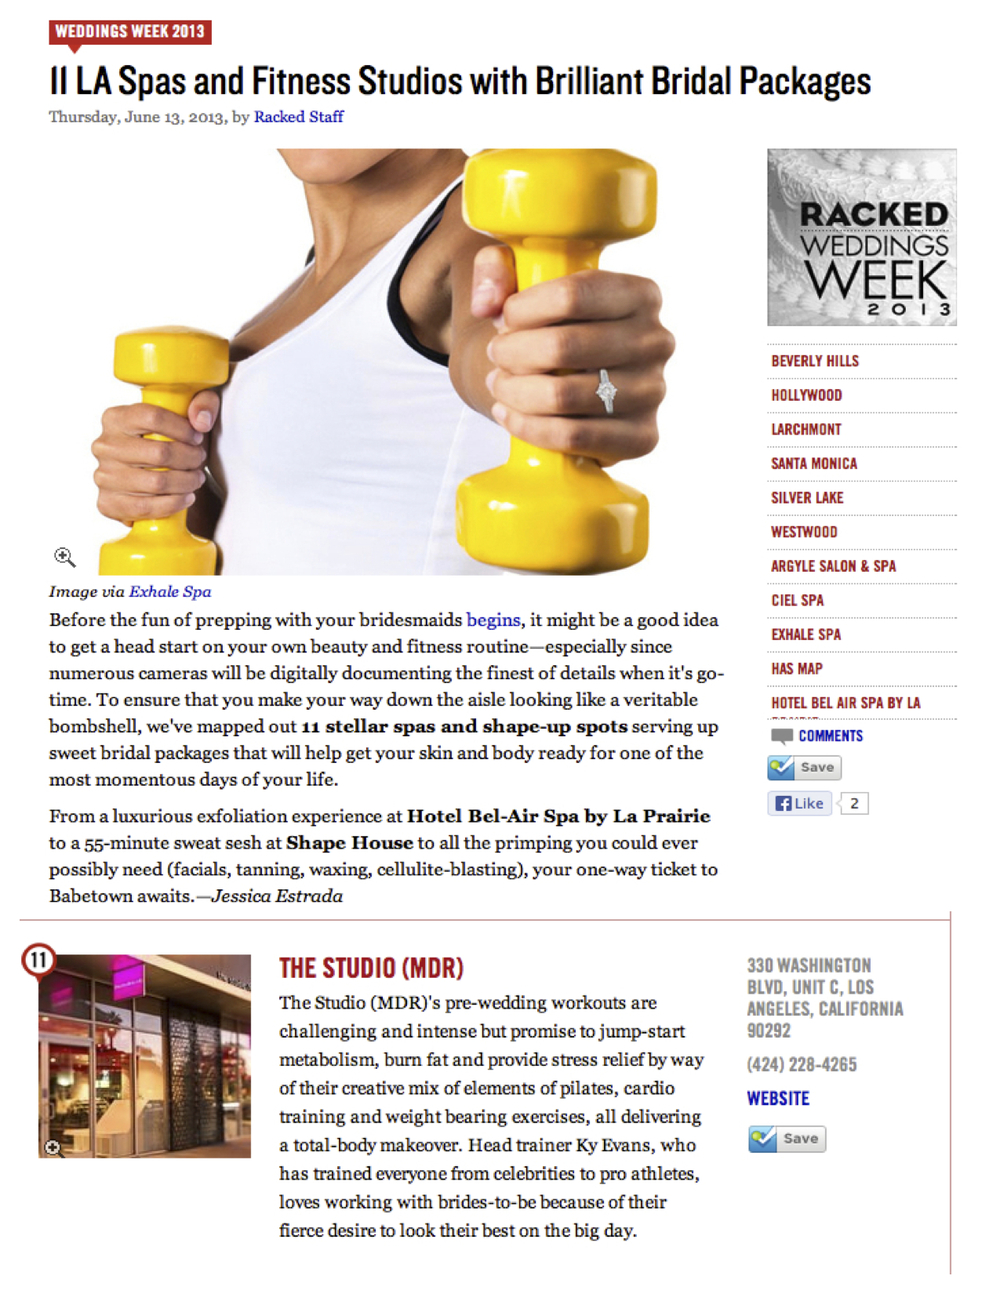 Racked article, June 2013